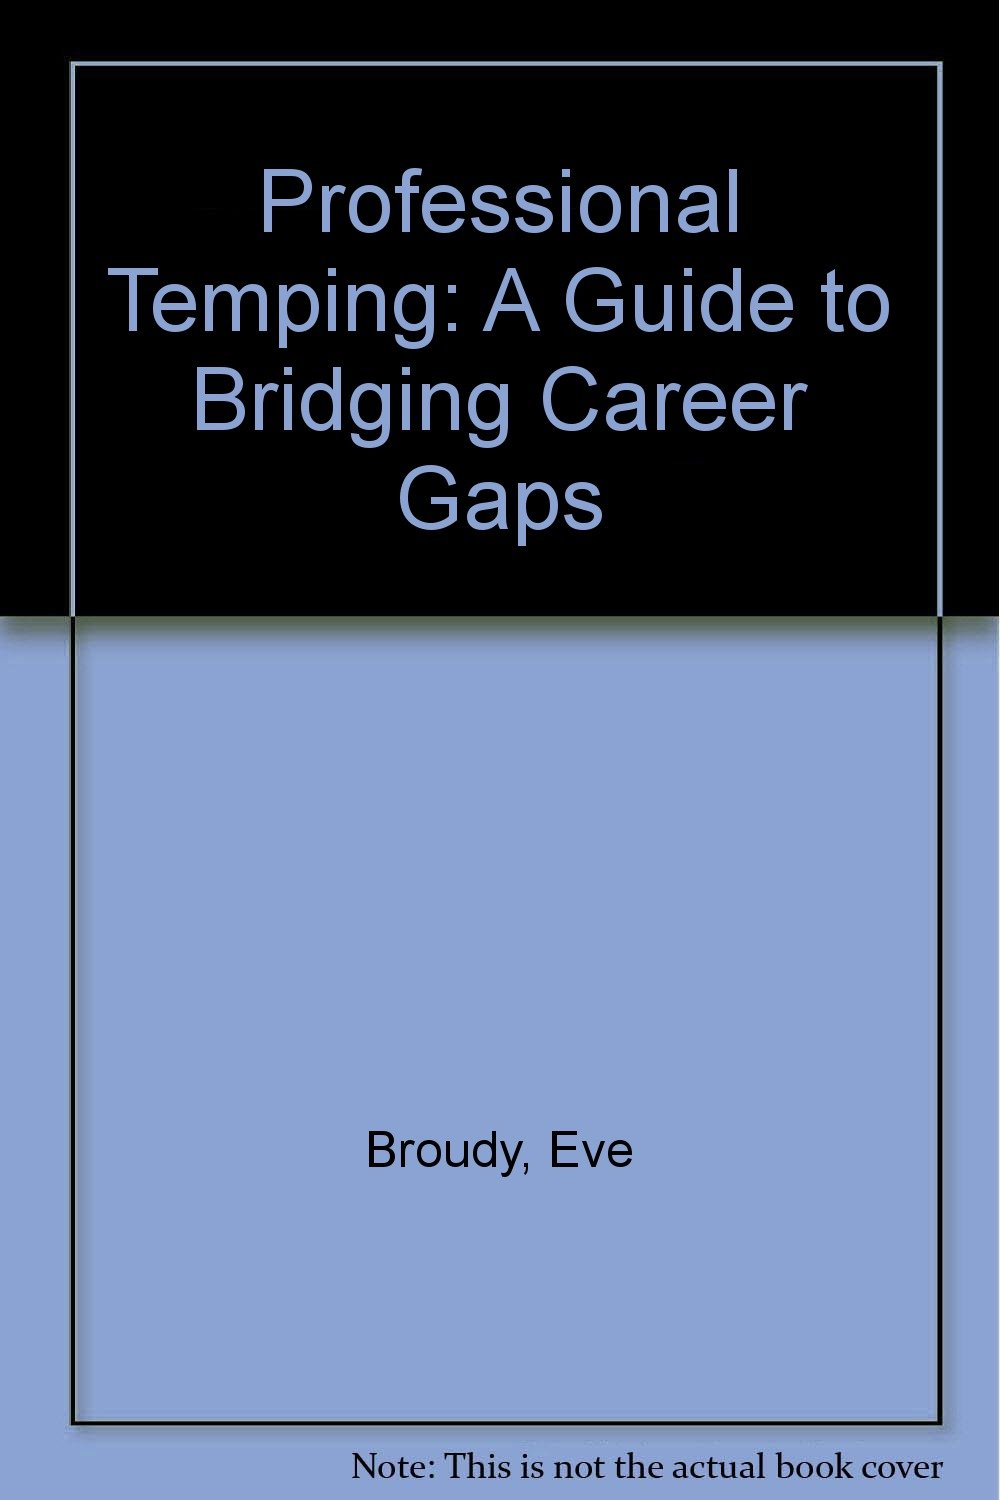 professional temping a guide to bridging career gaps eve broudy 9780020081616 amazoncom books